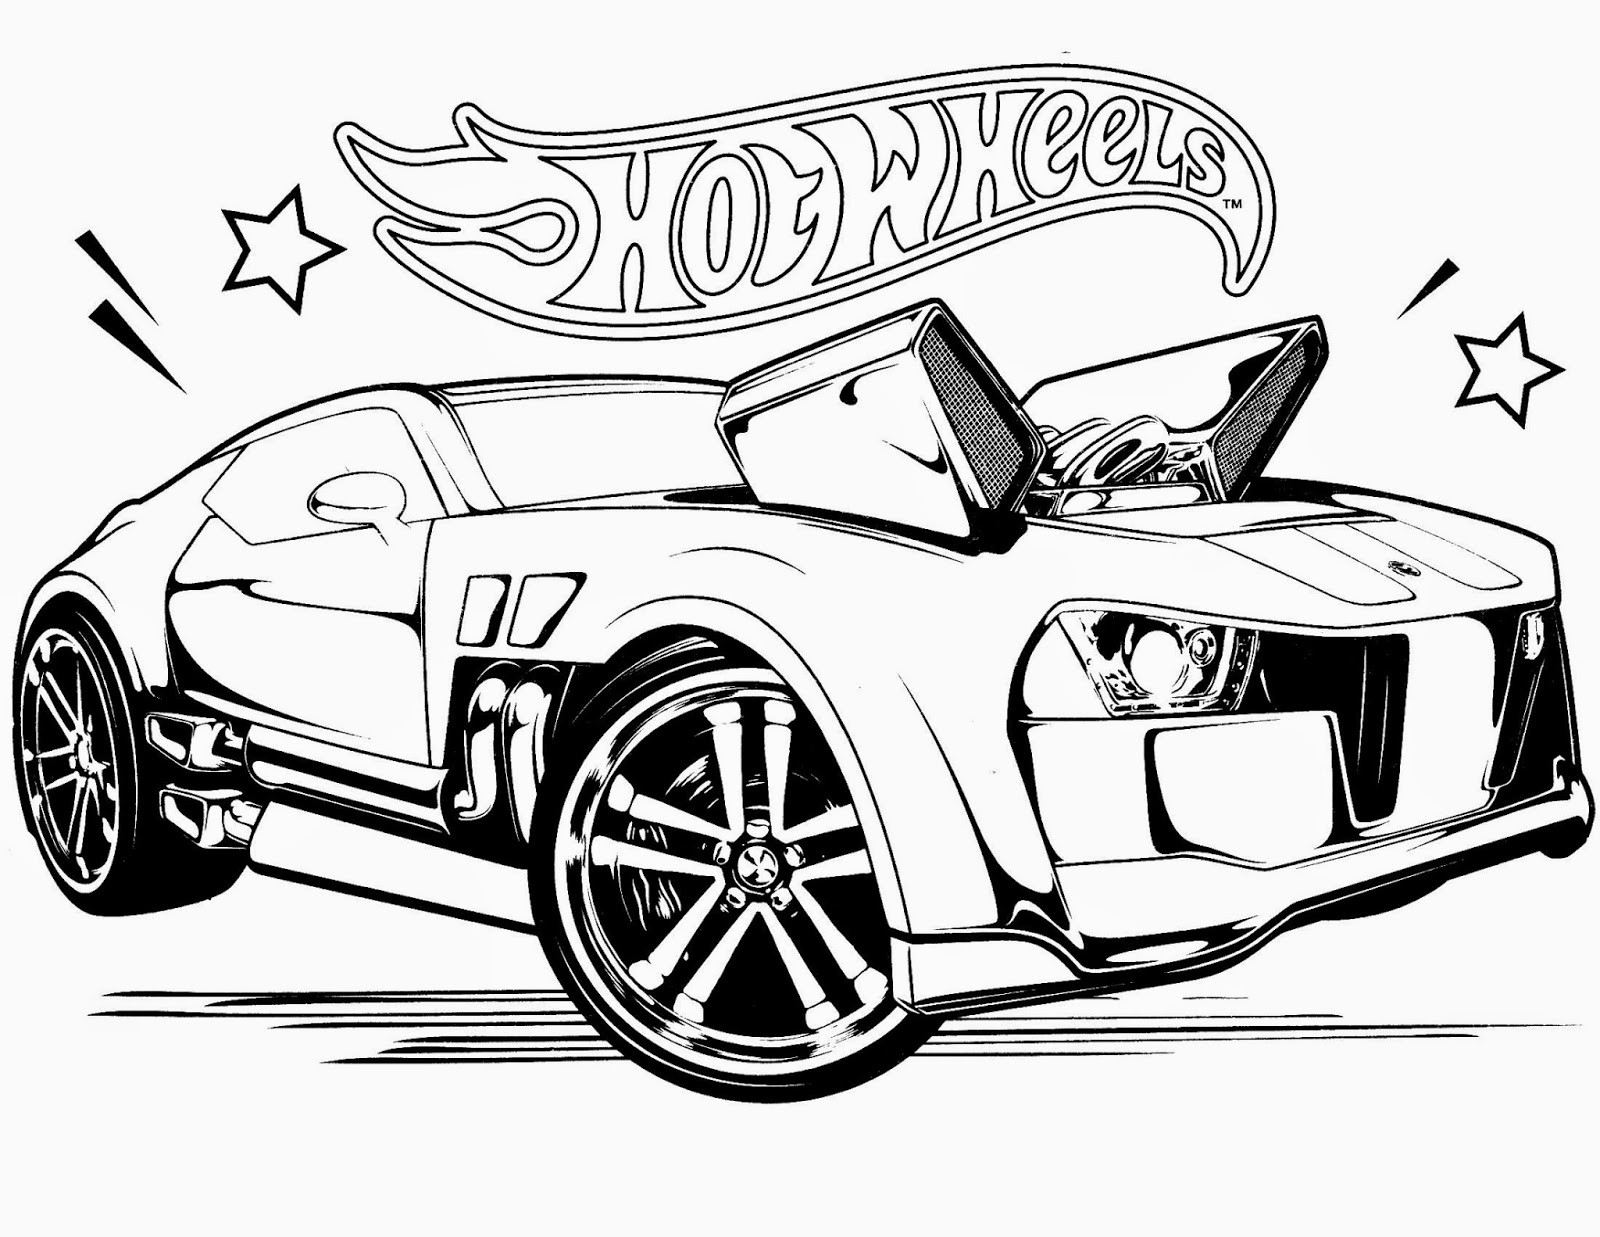 Free Coloring Pages For Boys Sports : Hot wheels drawing at getdrawings free for personal use hot